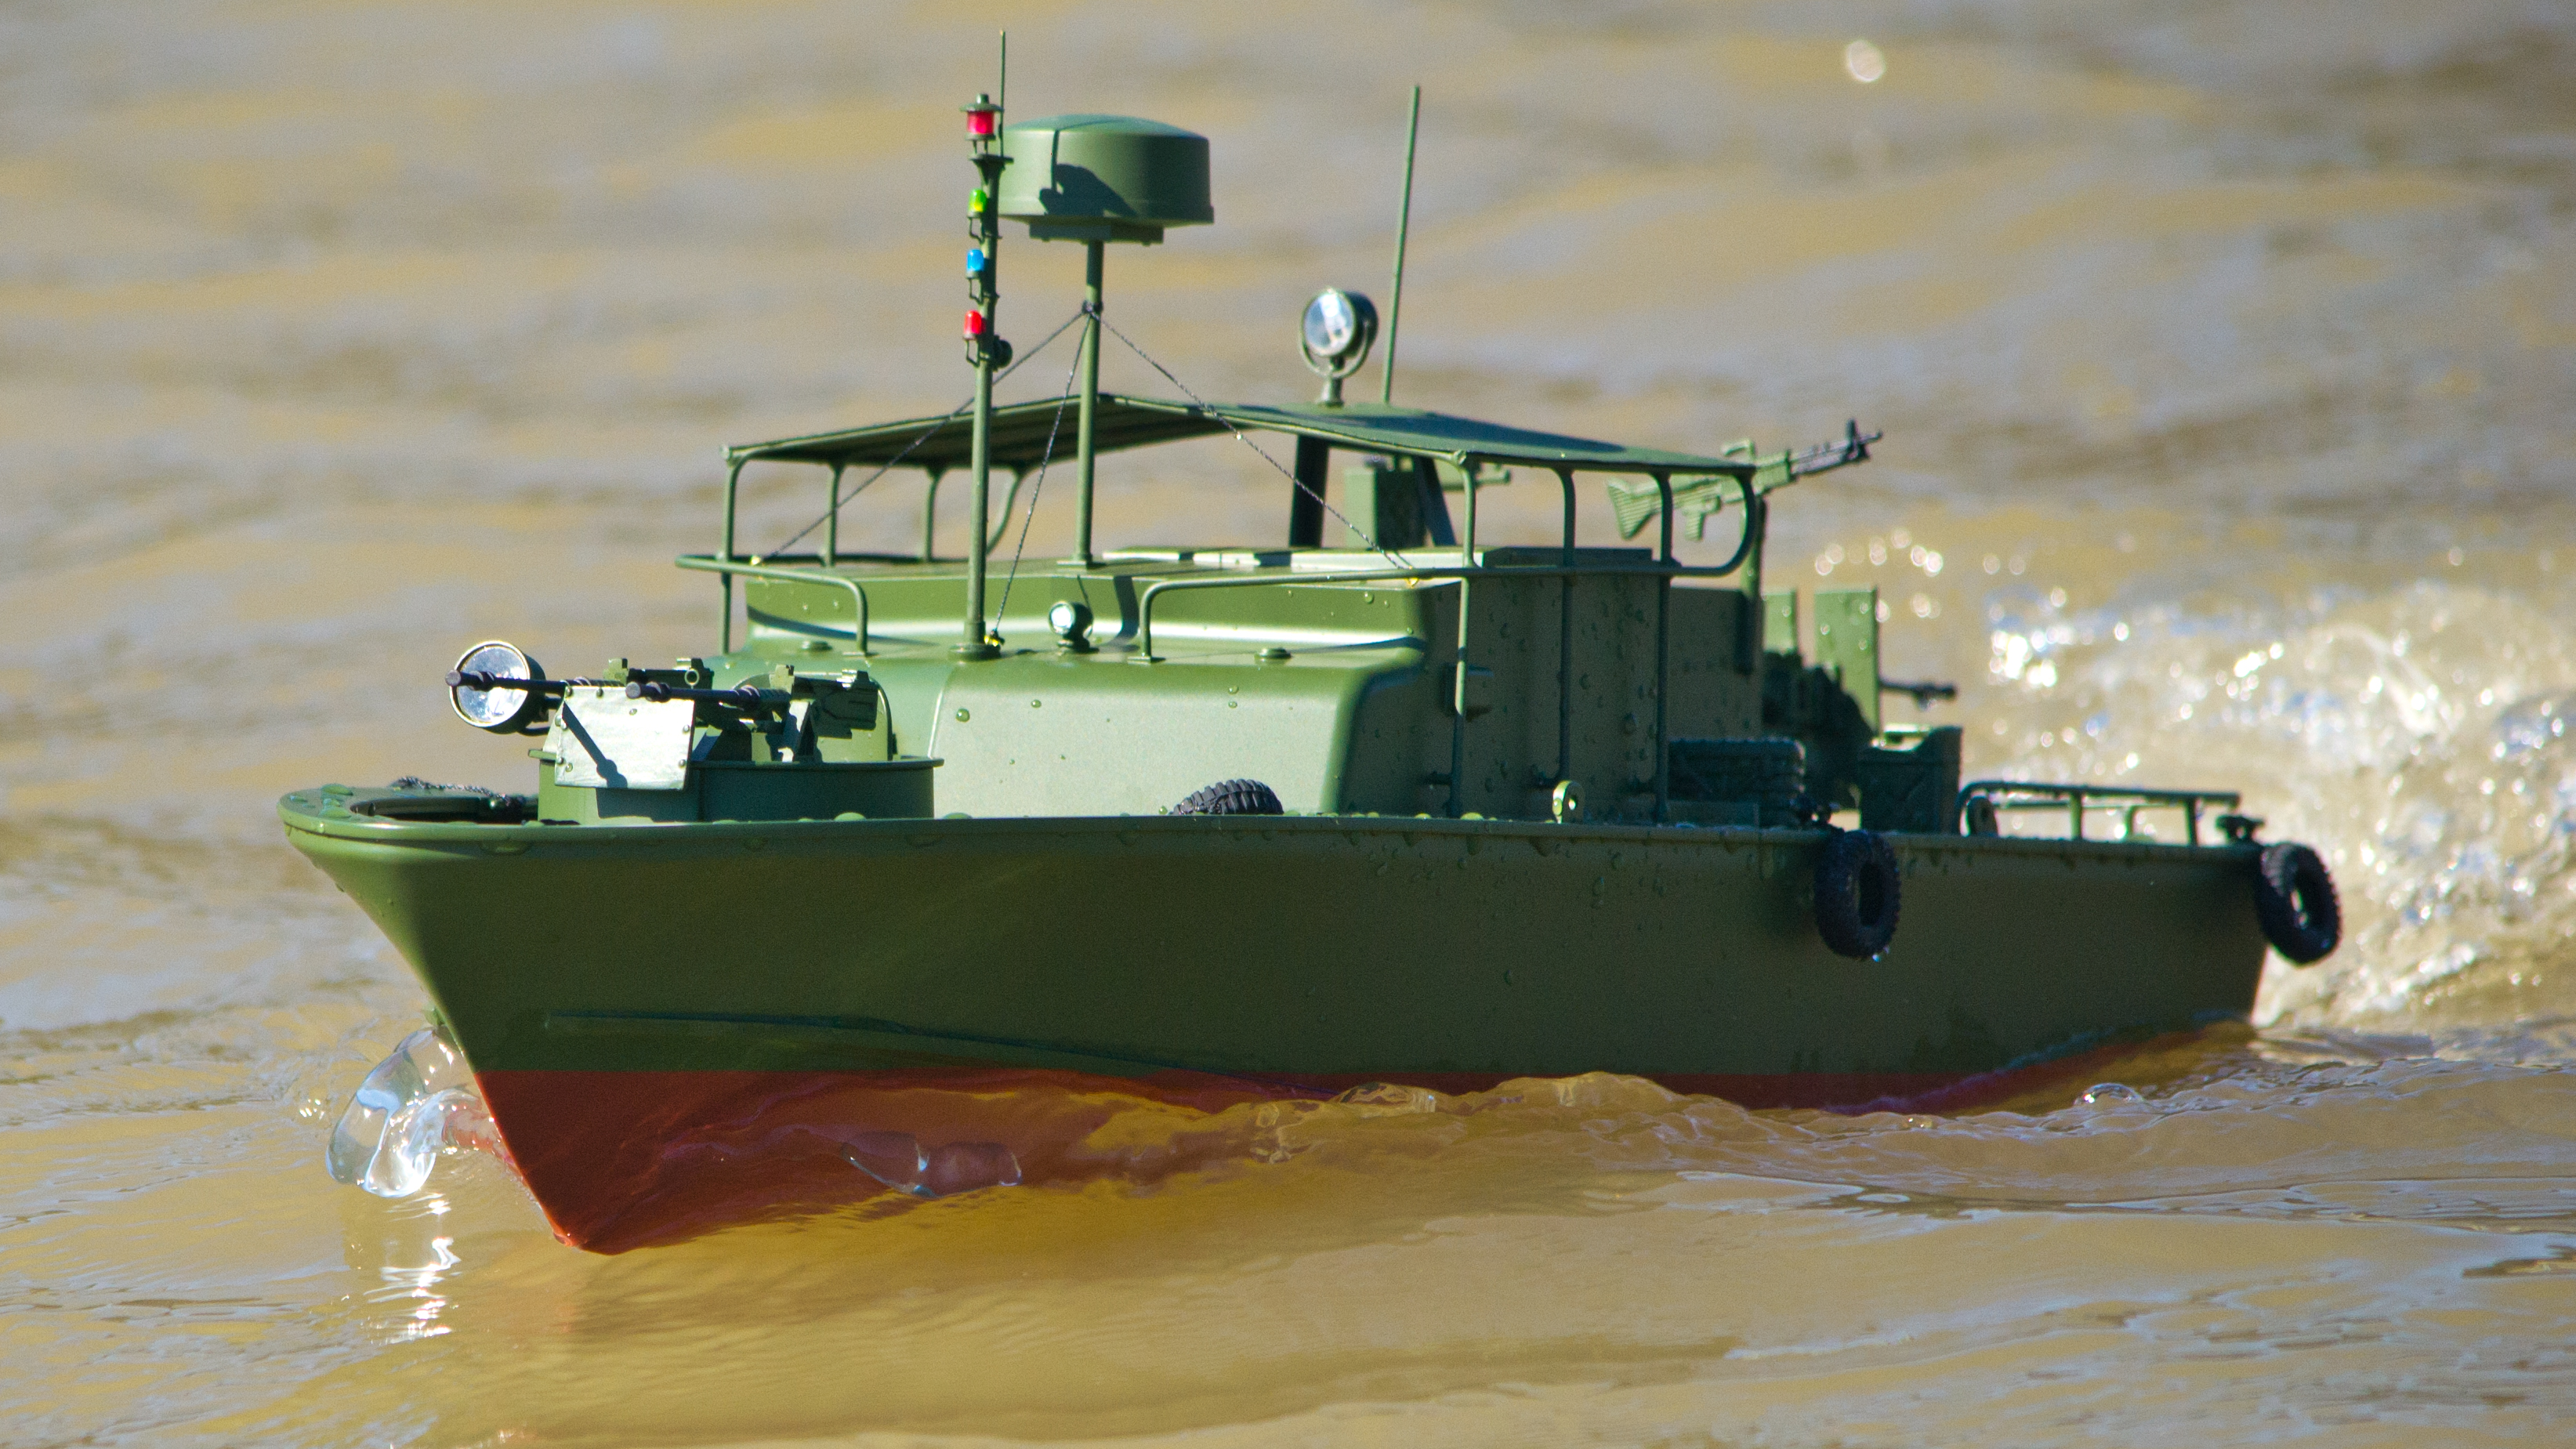 Testing the ProBoat Models Alpha Patrol Boat - Tested